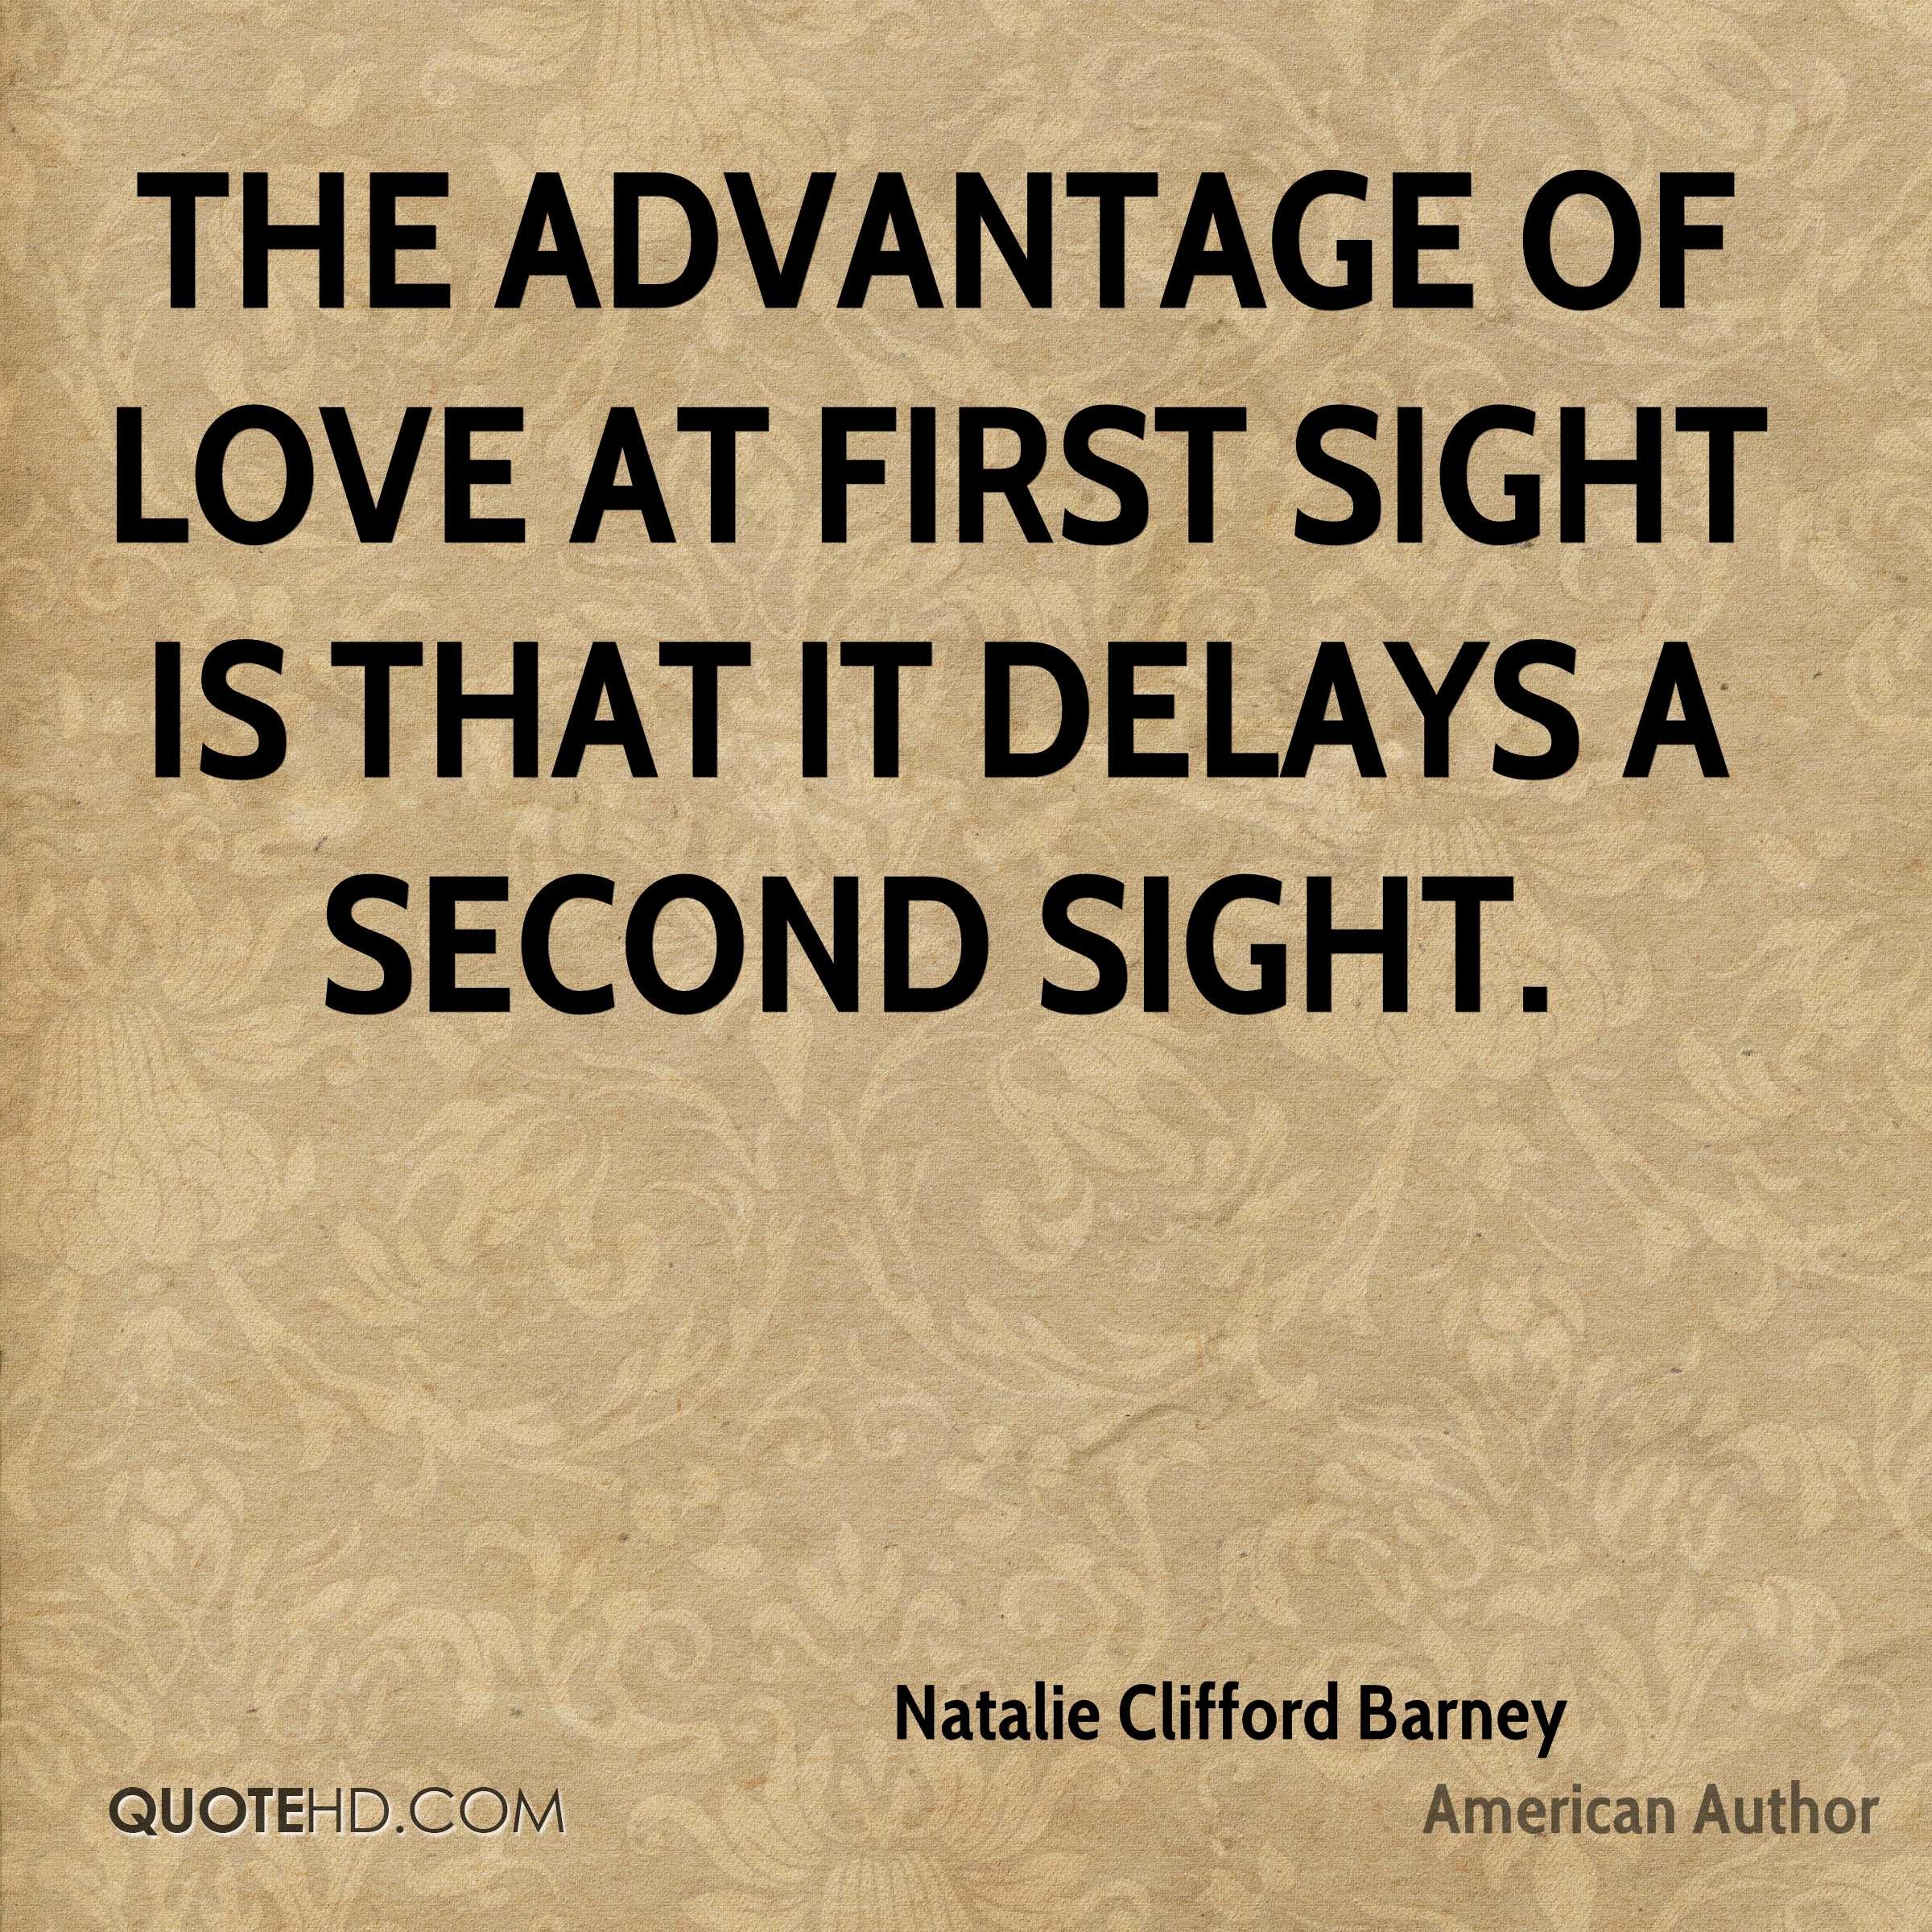 Quotes About Love At First Site: Natalie Clifford Barney Quotes